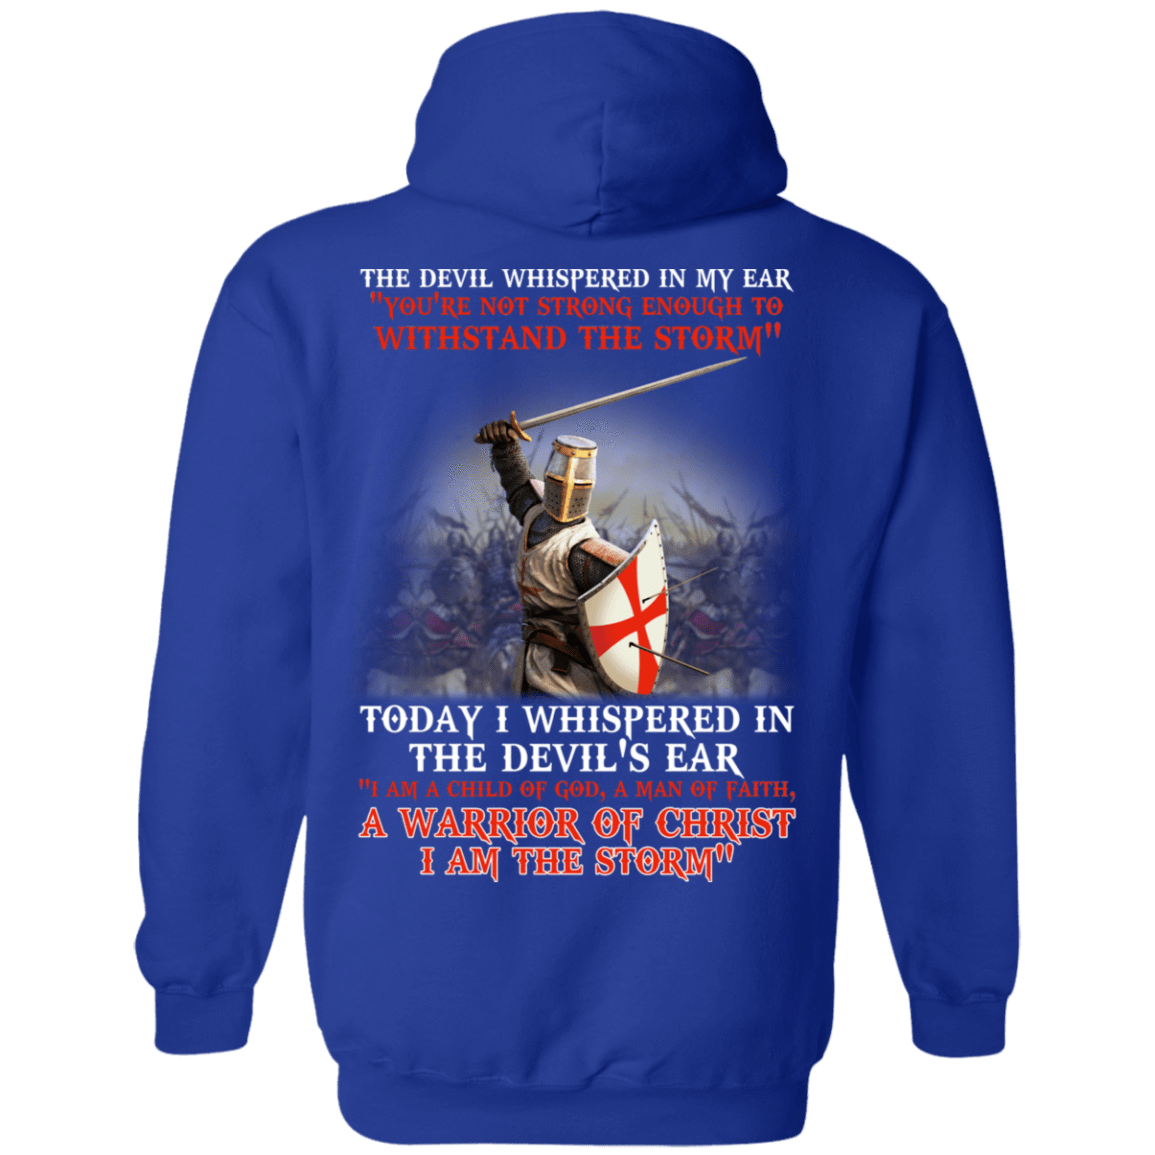 Knight Templar: I Am A Child Of God A Warrior Of Christ I Am The Storm 541-4765-72774741-23175 - Tee Ript